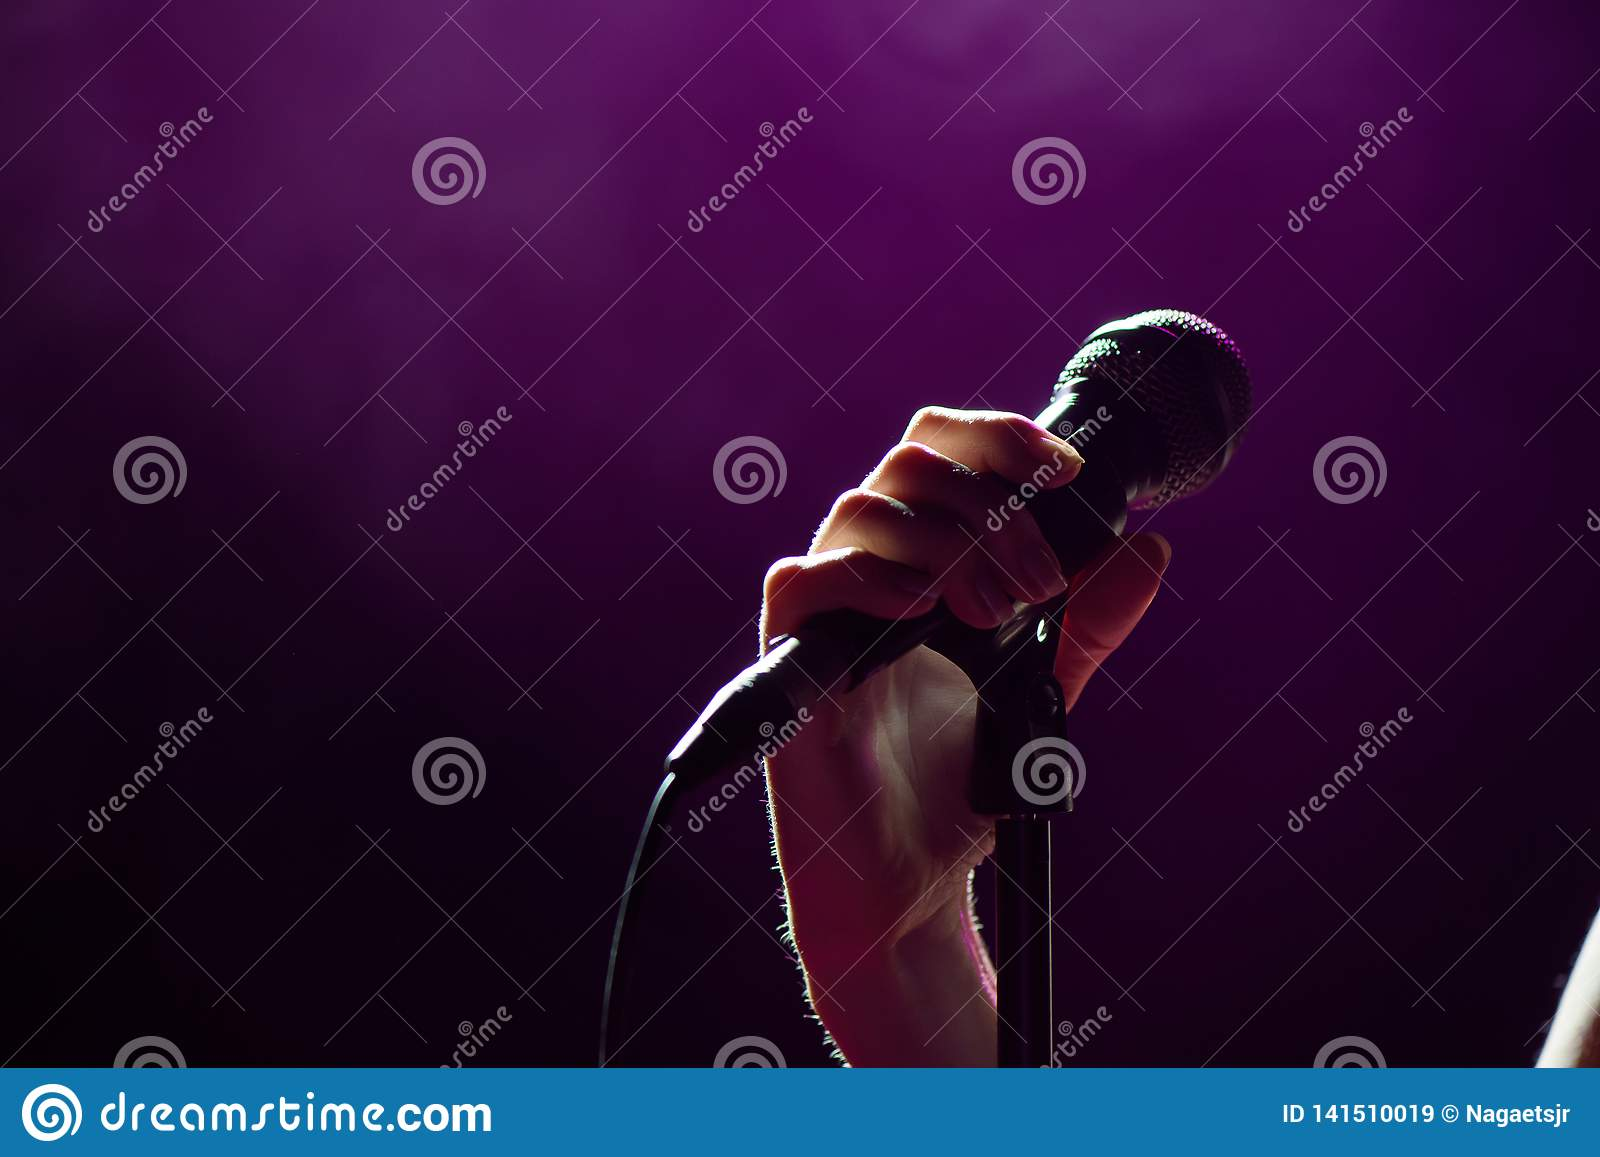 Microphone in hand singer on stage. Live music background. Microphone and stage lights.